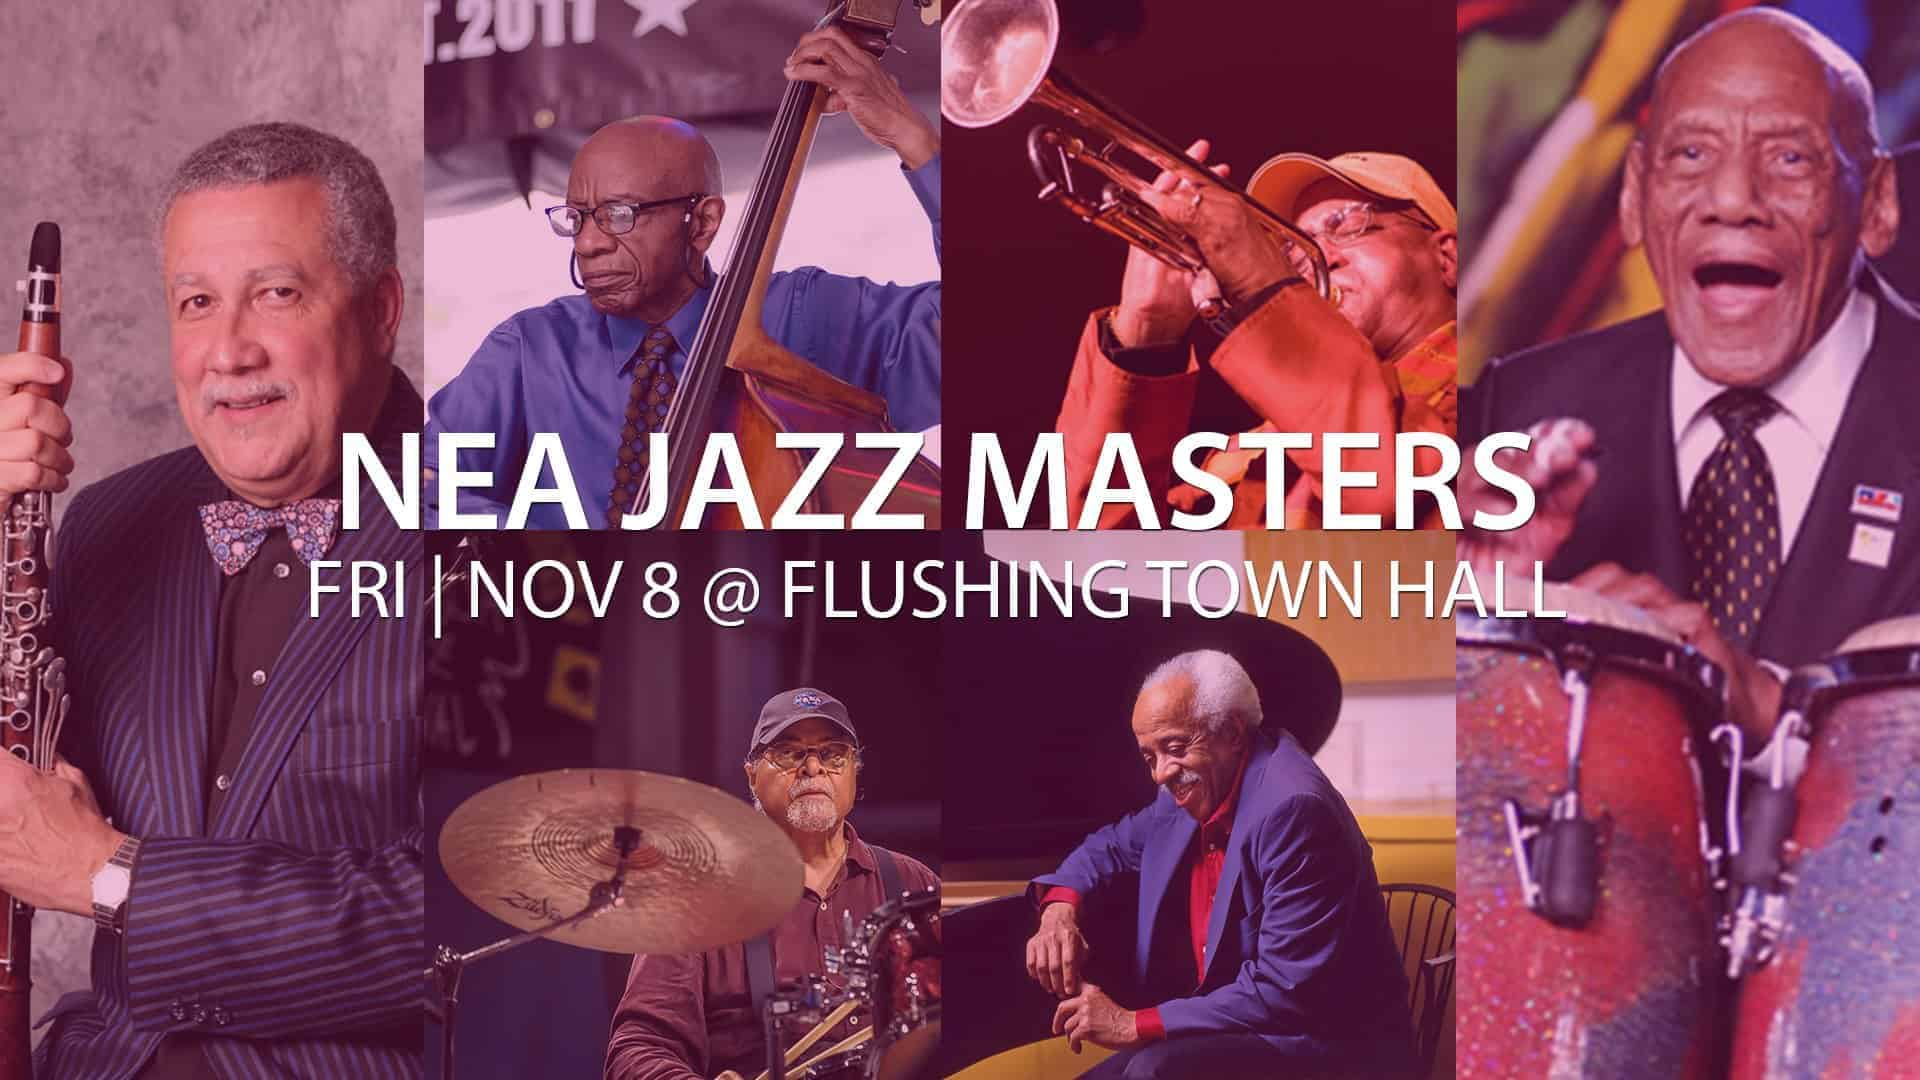 NEA Jazz Masters Flushing Town Hall Concert November 8 image